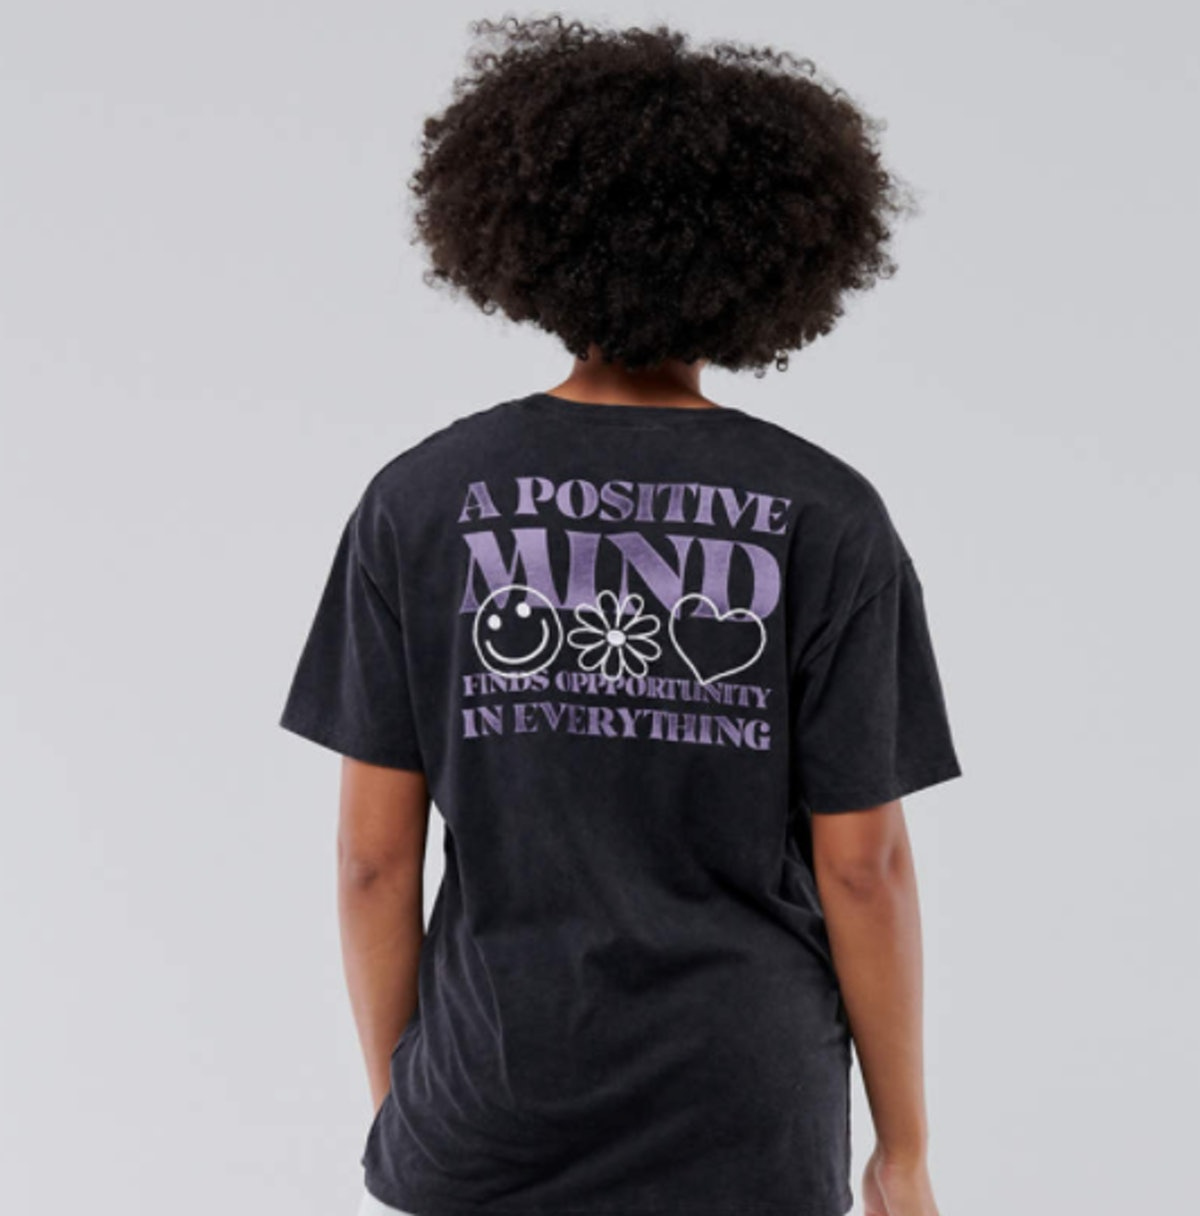 Limited-Edition Charli & Dixie Oversized Tee